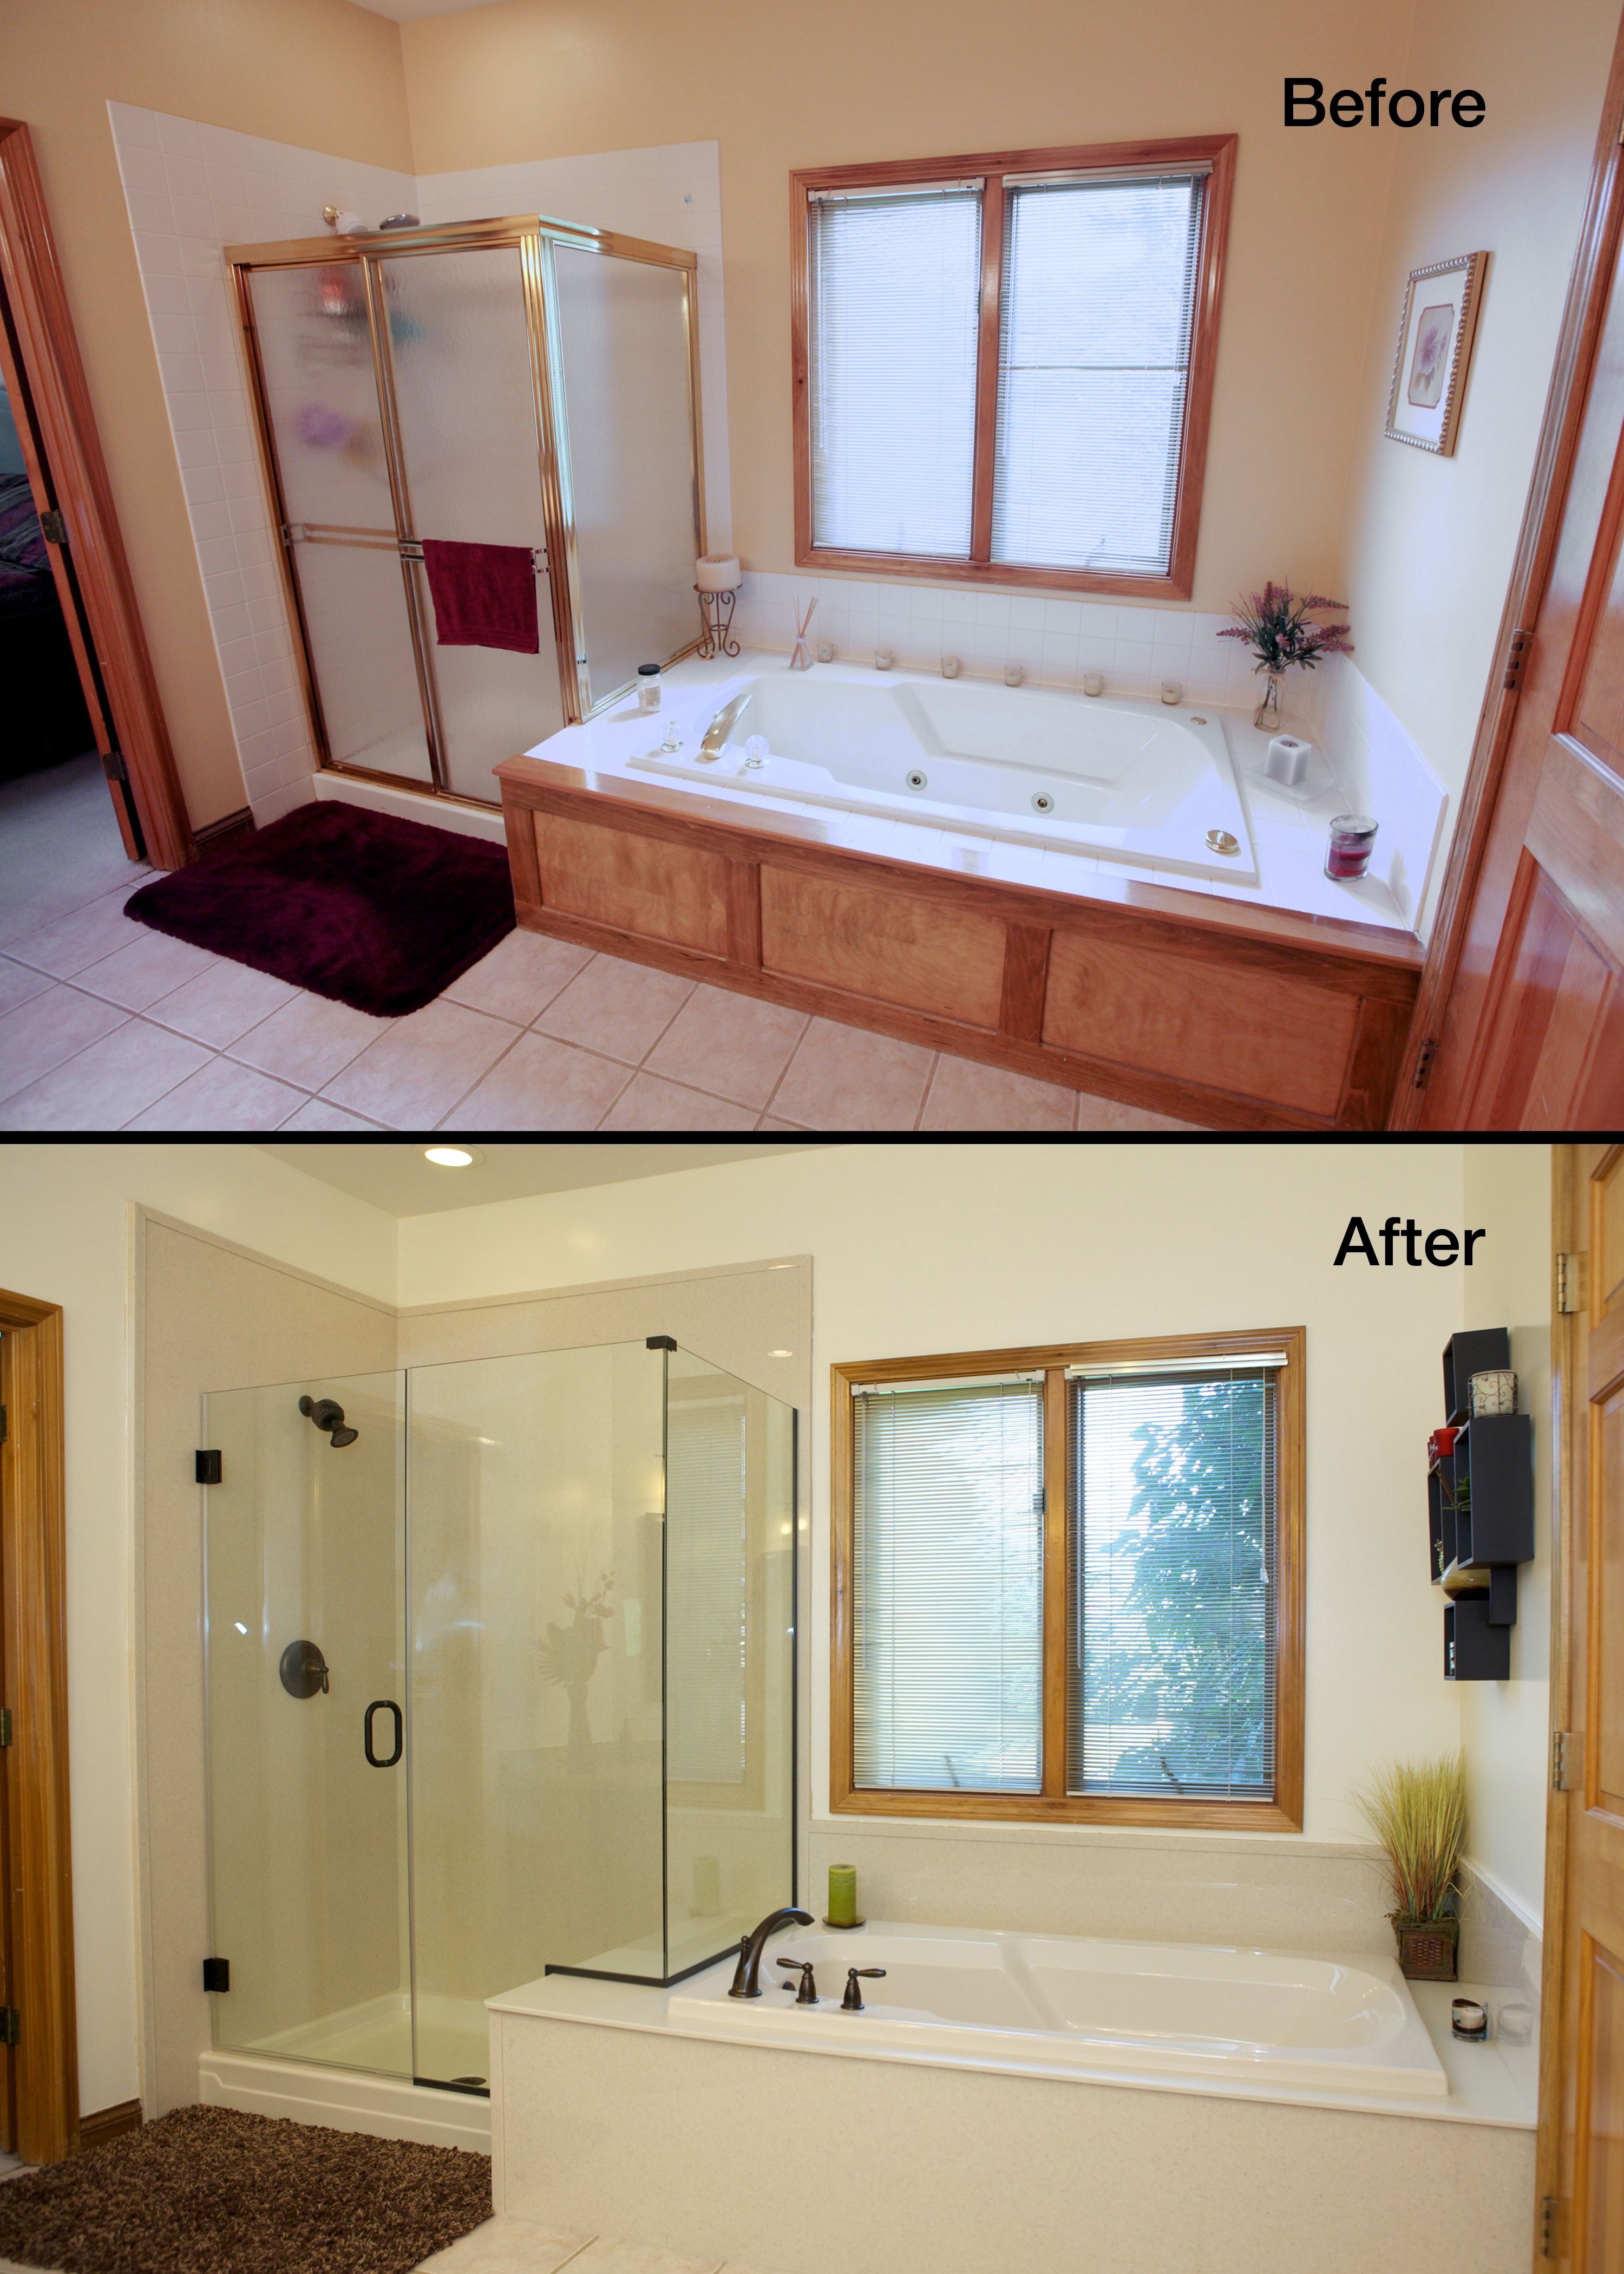 Doug Natalie S Master Bath Before After Pictures Home Remodeling Contractors Bathrooms Remodel Bathroom Renovations